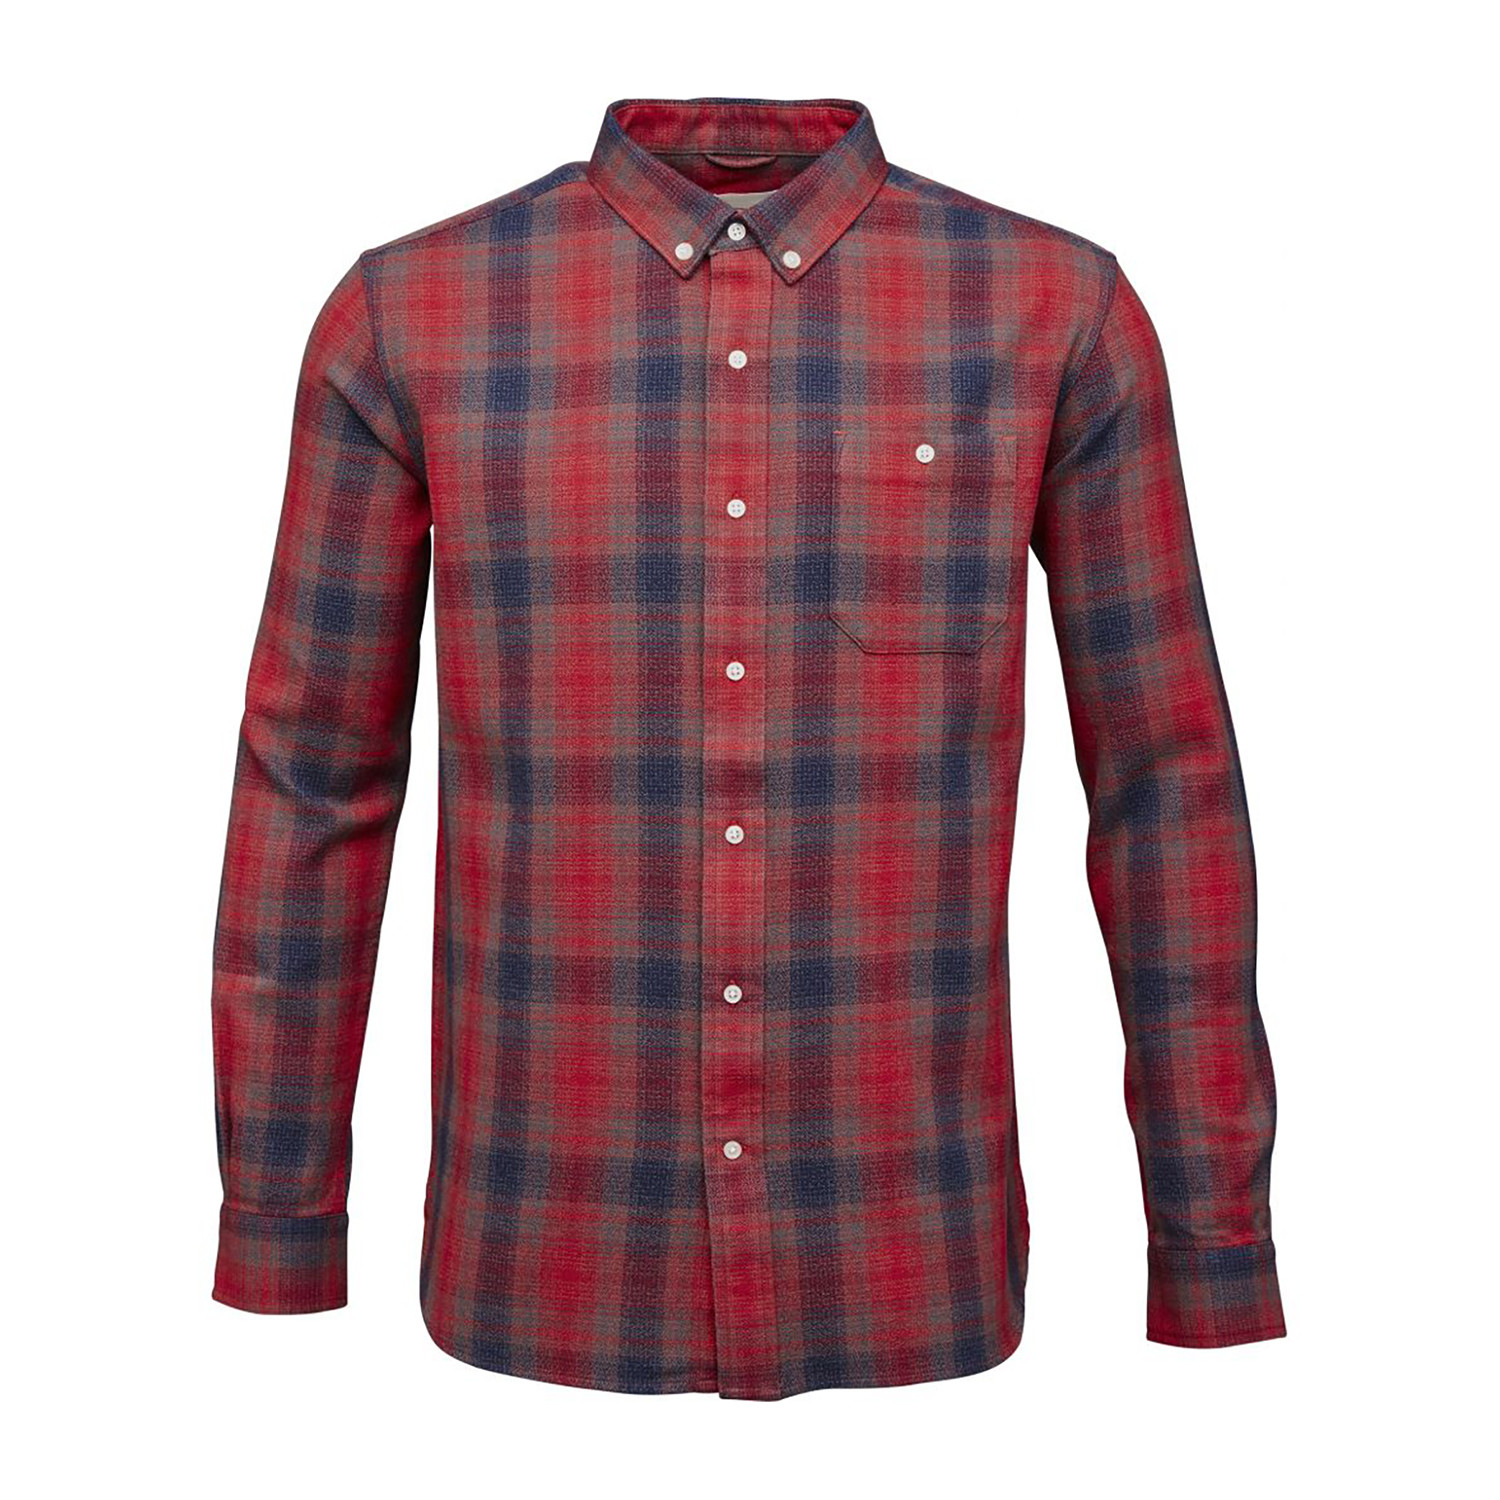 yardyed checked shirt pompeain s knowledge cotton apparel touch of modern. Black Bedroom Furniture Sets. Home Design Ideas